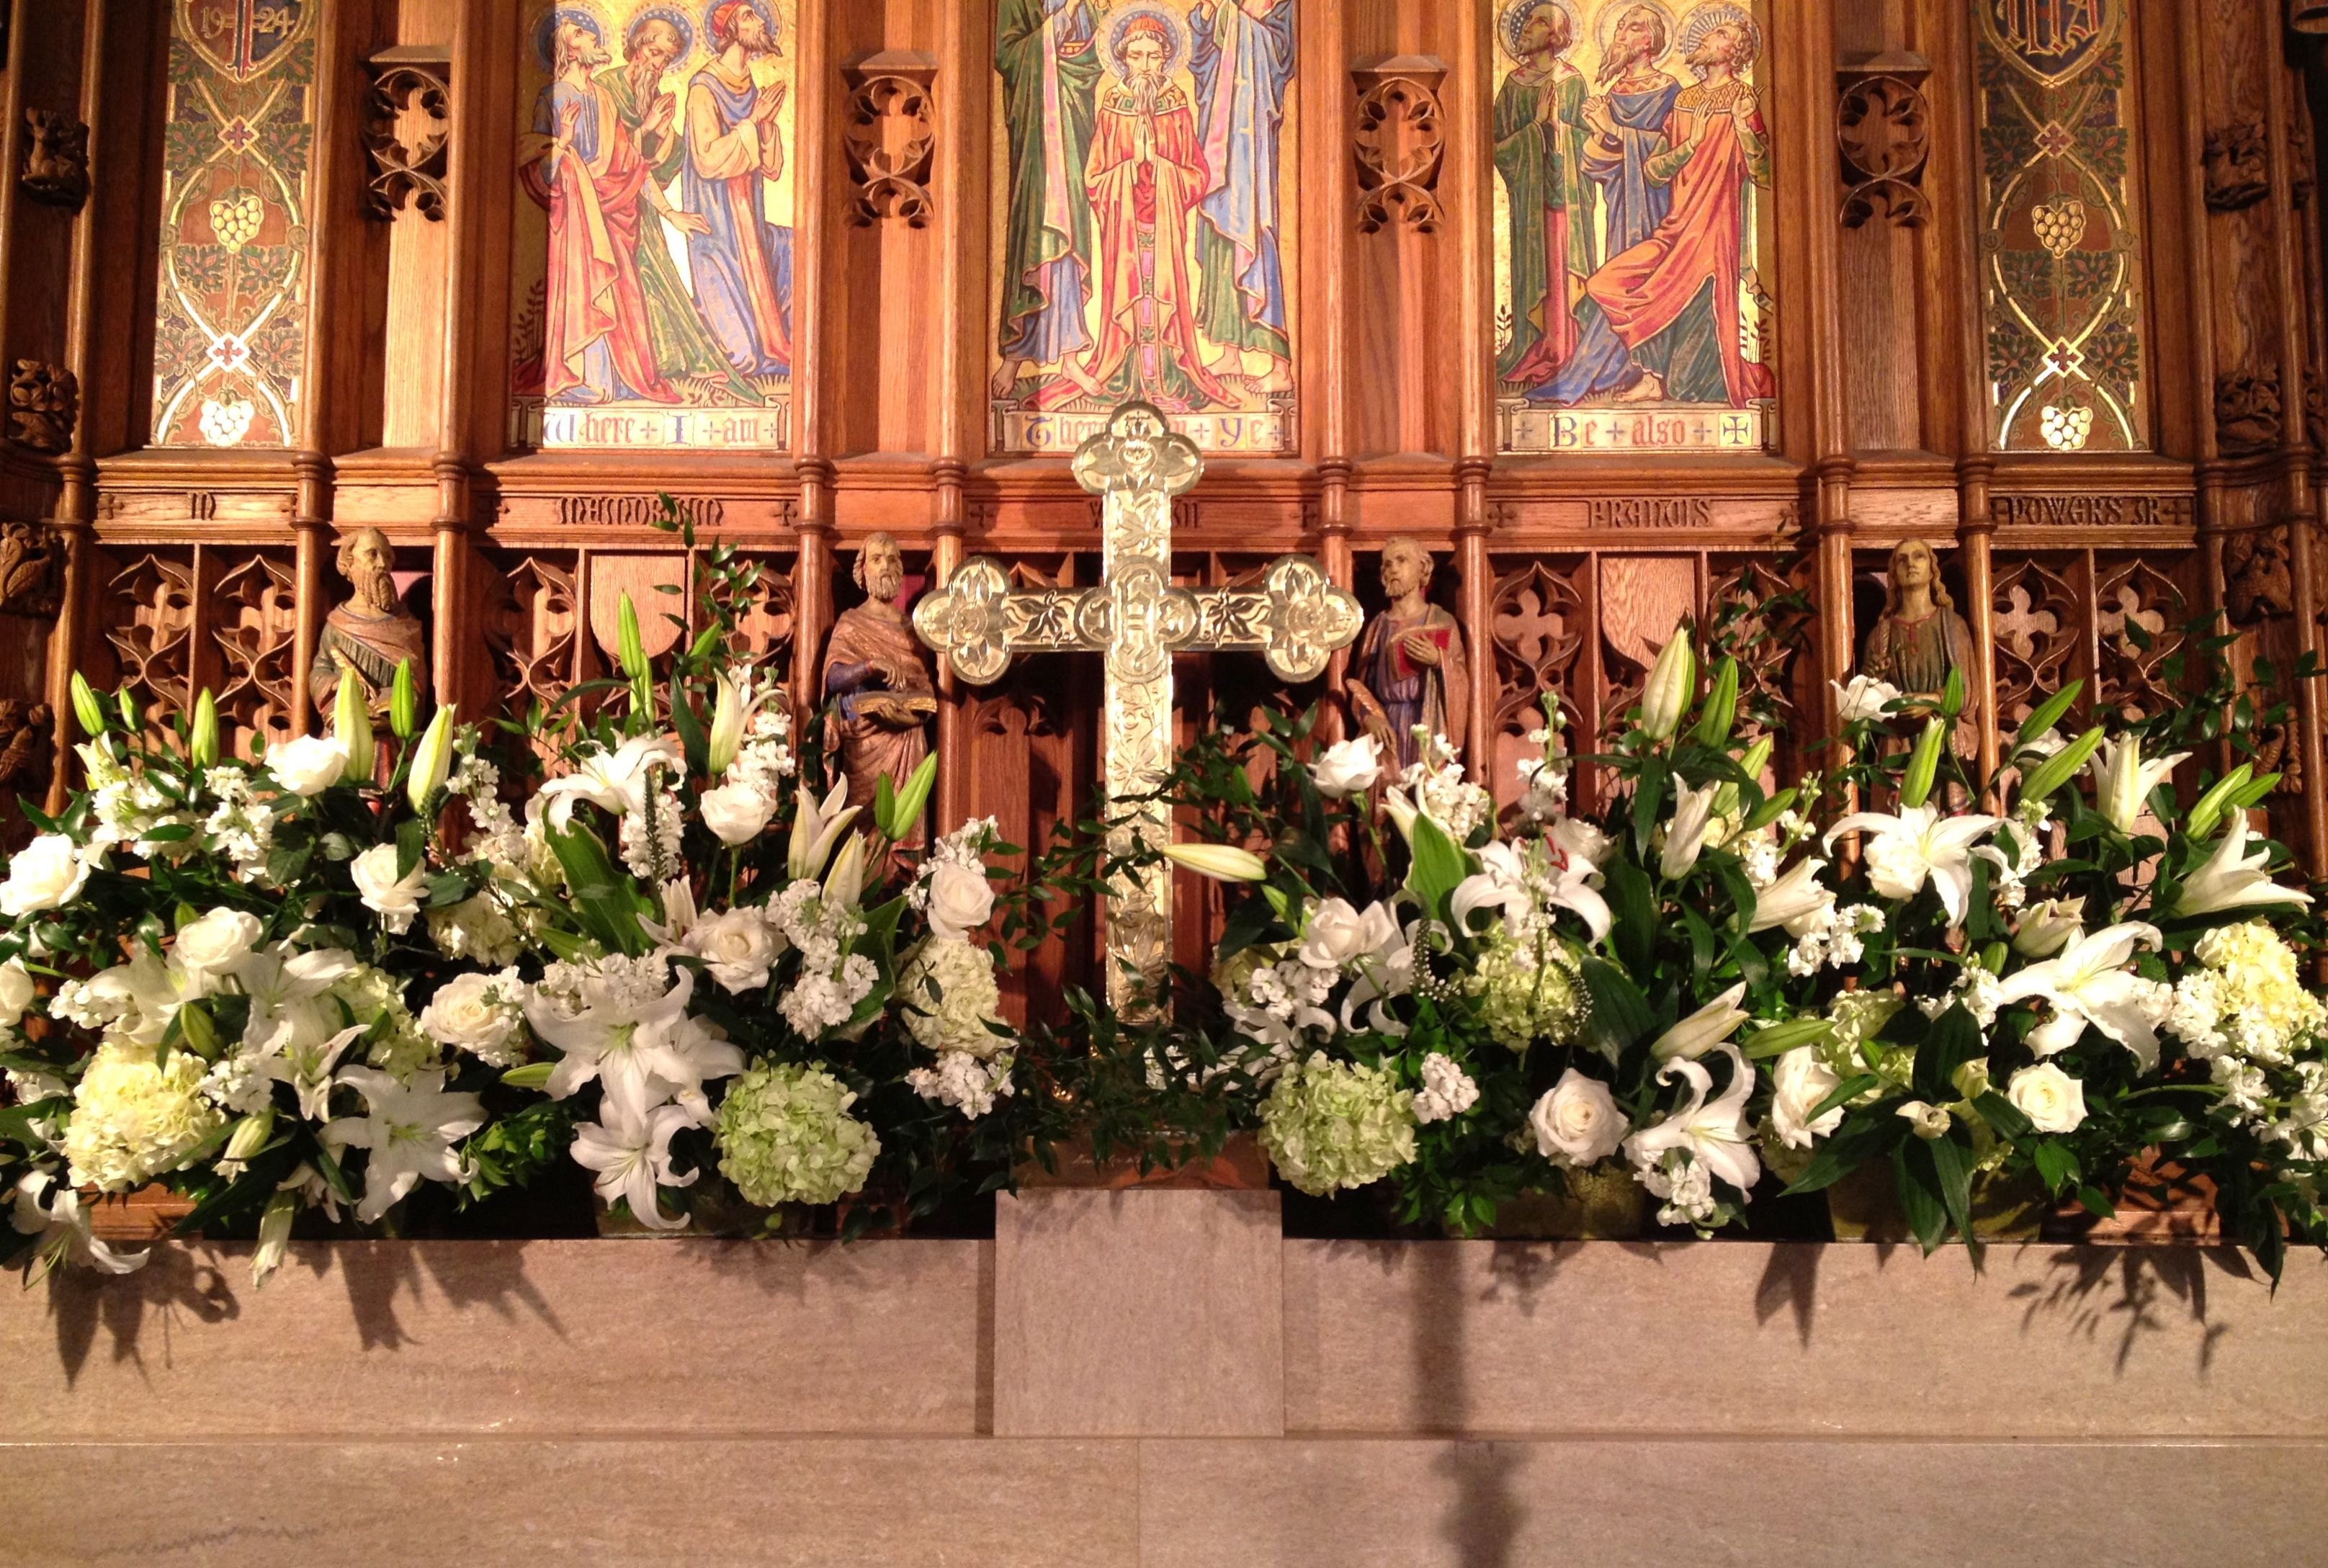 Pin By Berenice N On Florals Church Flowers Altar Flowers Wedding Church Wedding Decorations